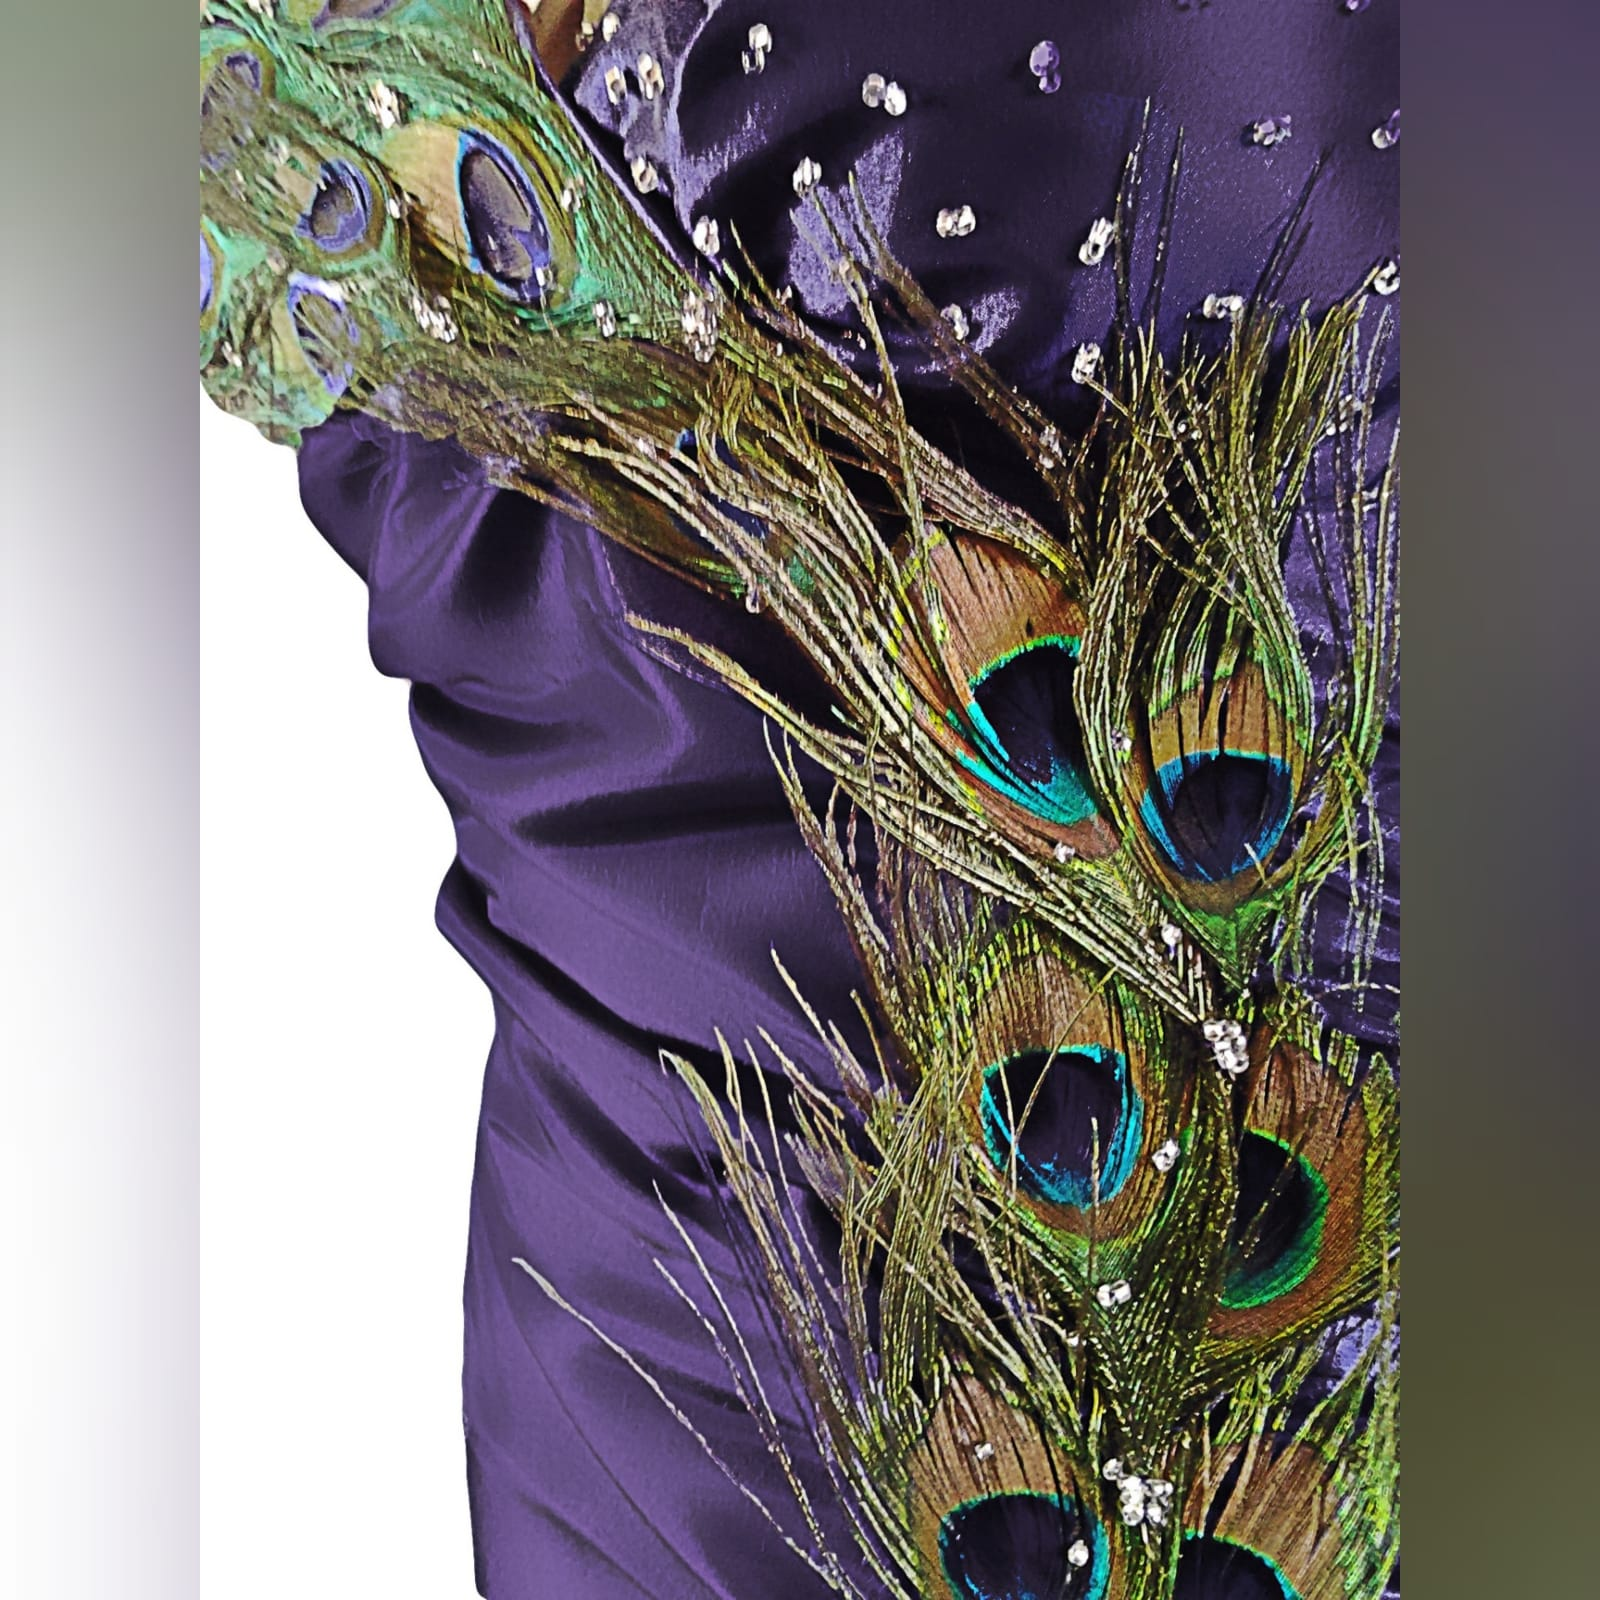 Purple peacock prom dance dress 5 purple prom dance dress detailed with peacock feathers and silver beads, with a slit, halter neck and matching hair accessory.